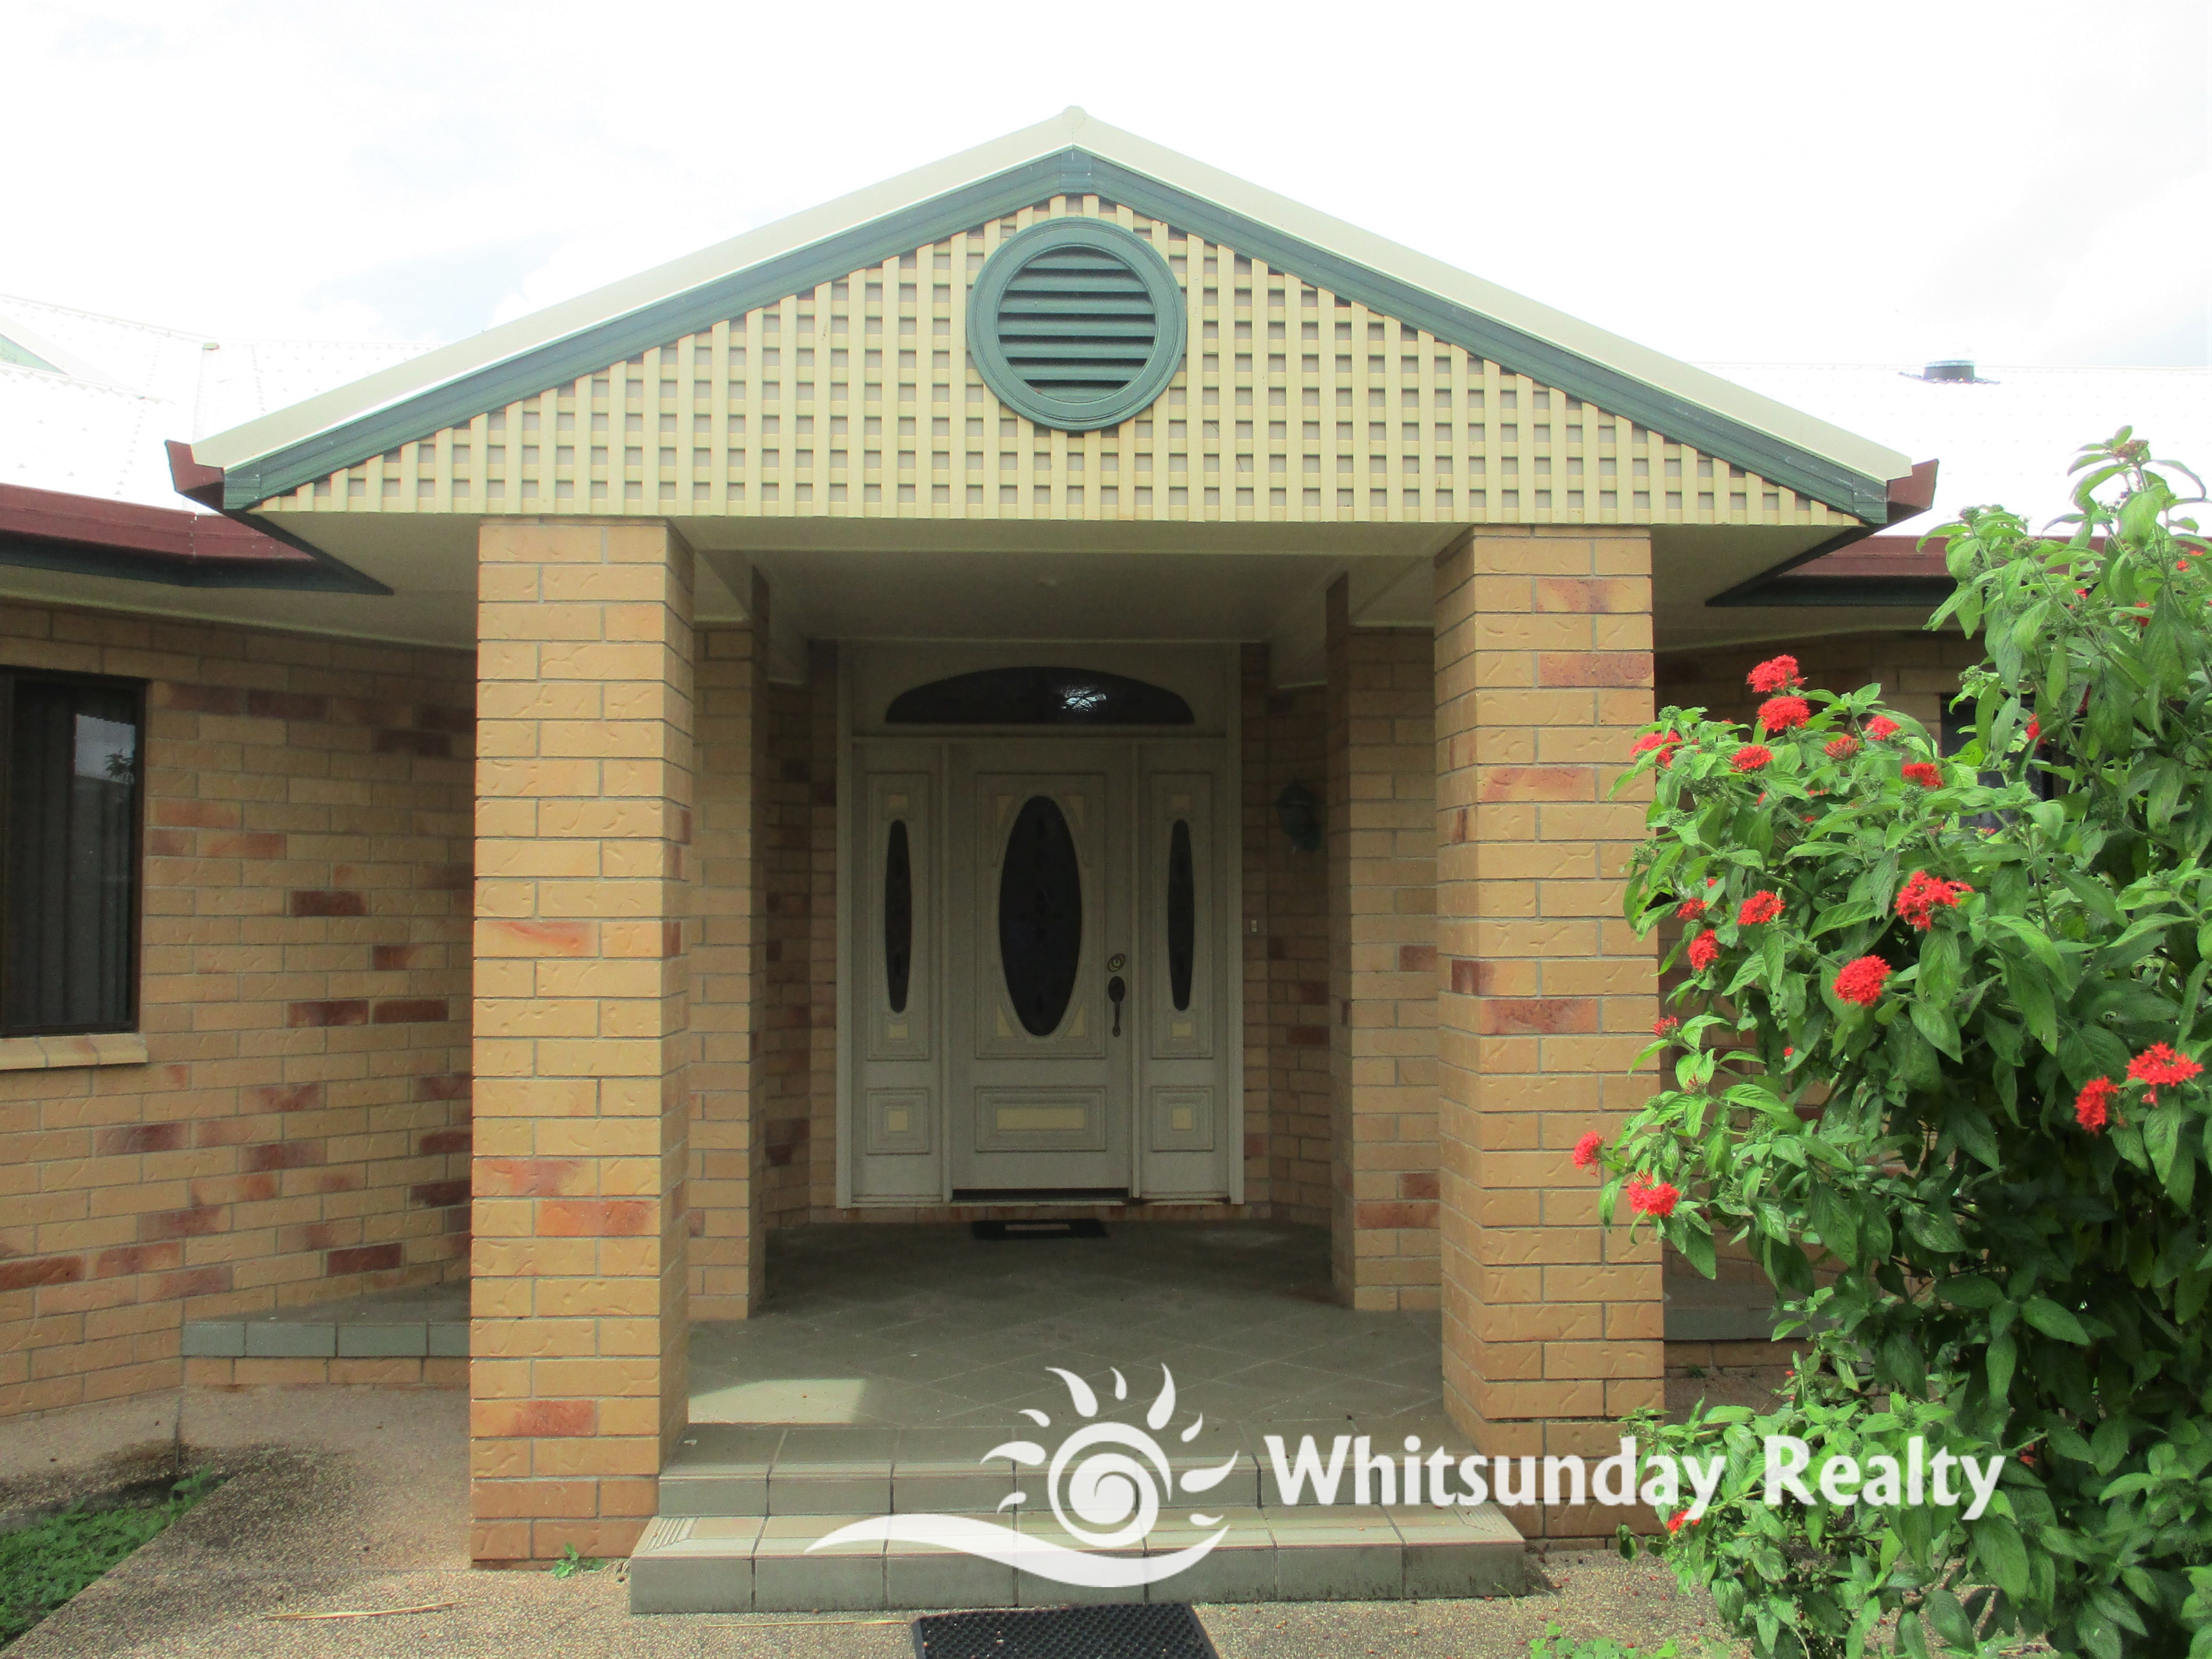 1 Keith Johns Drive, PROSERPINE  QLD  4800